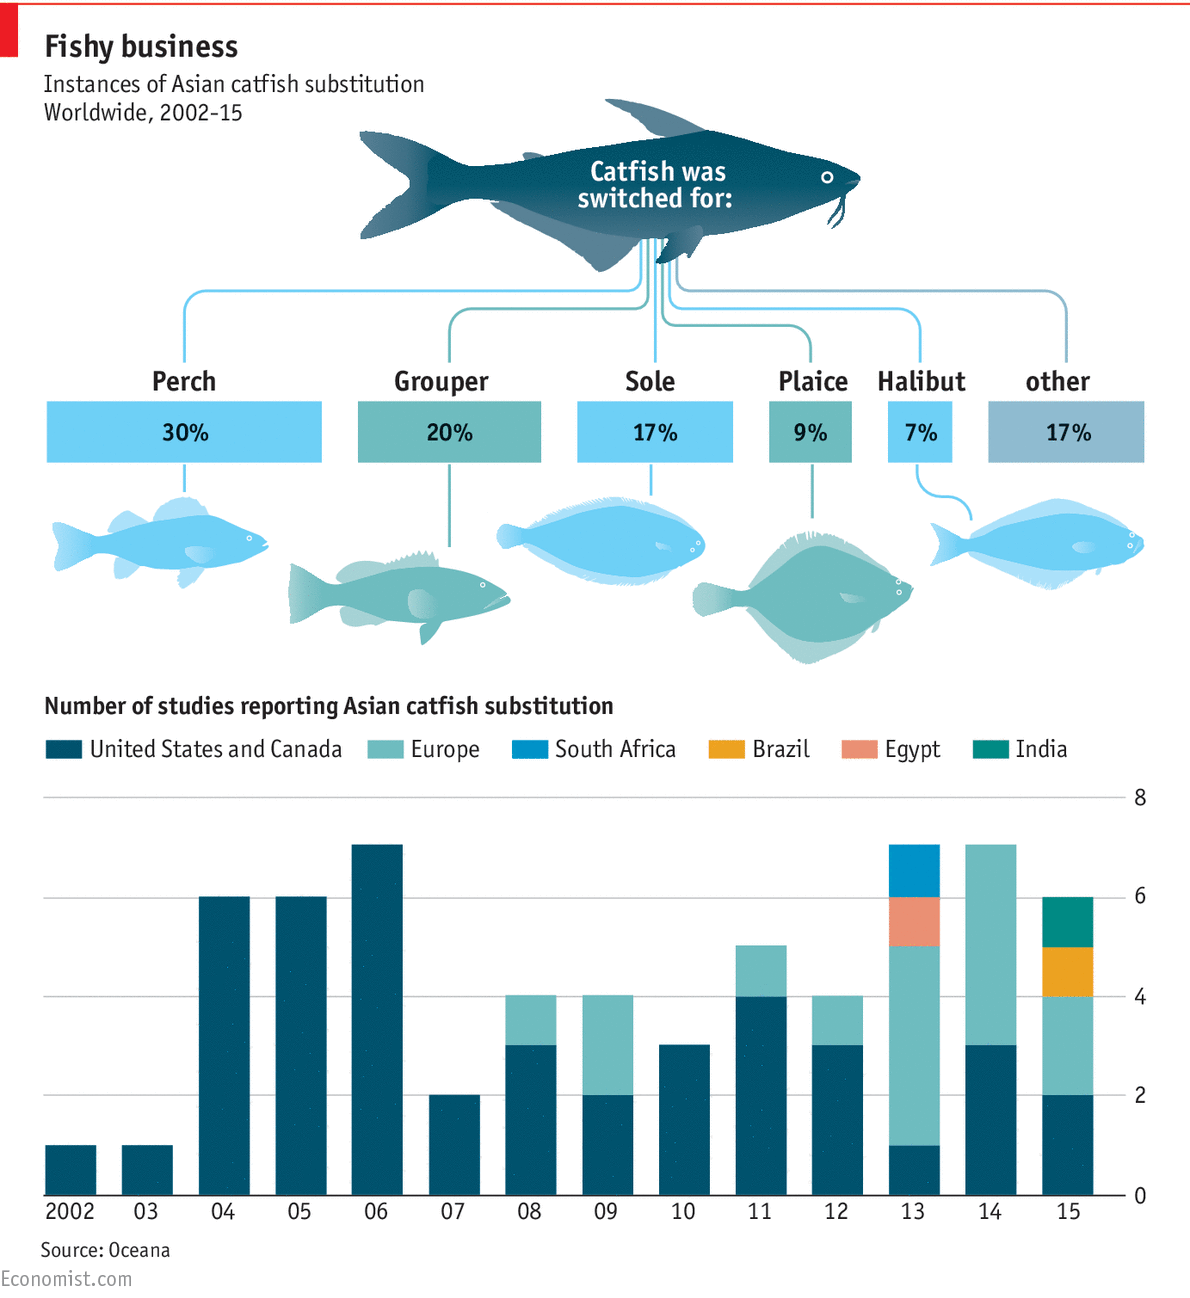 Seafood substitutions are increasing